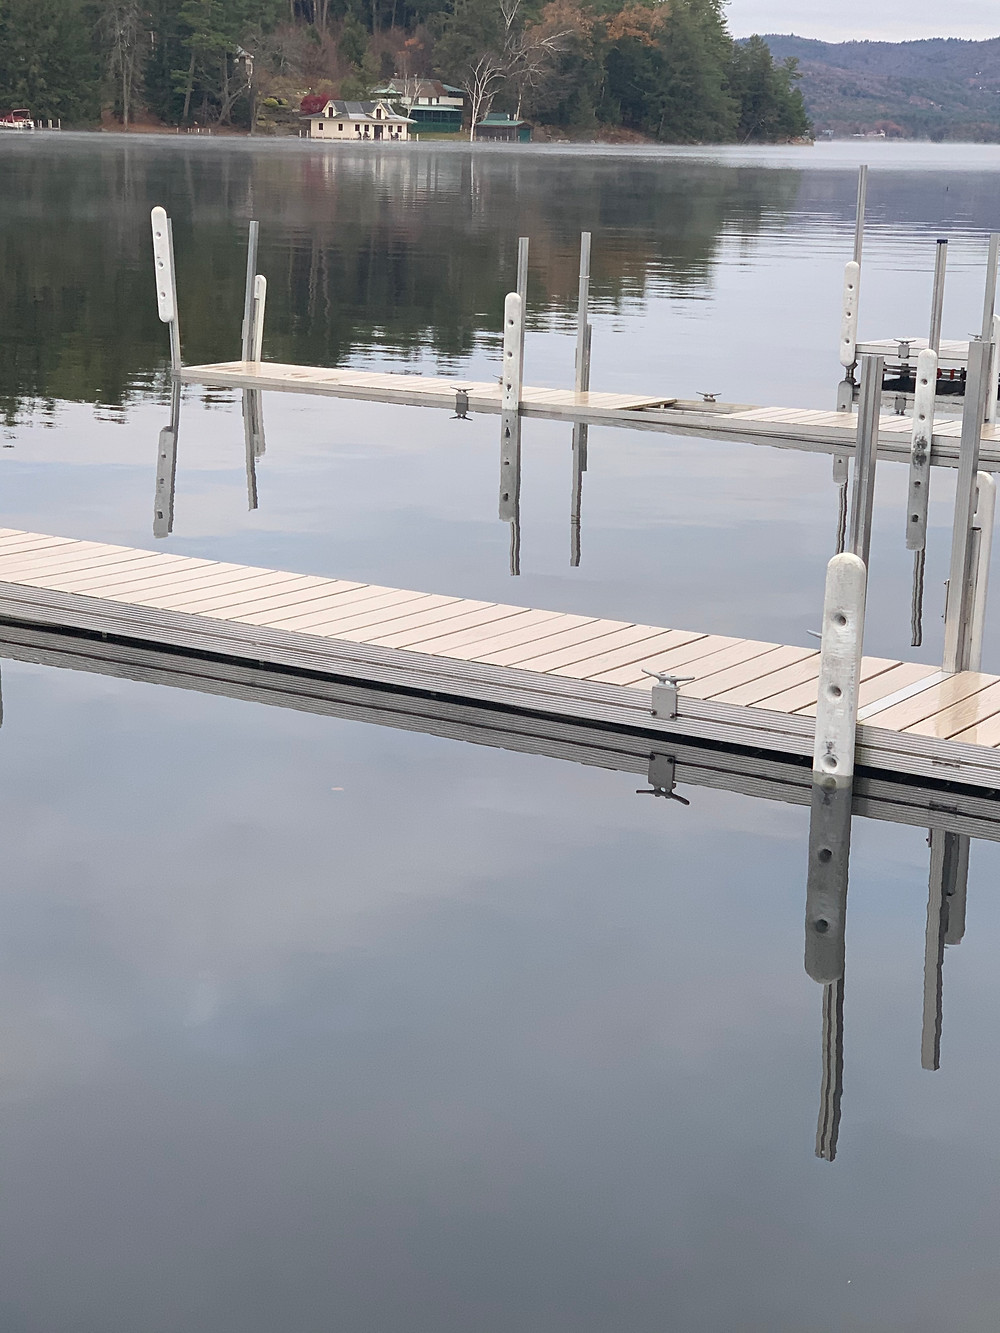 The recent storms cause the water levels to rise so much that our docks were almost submerged